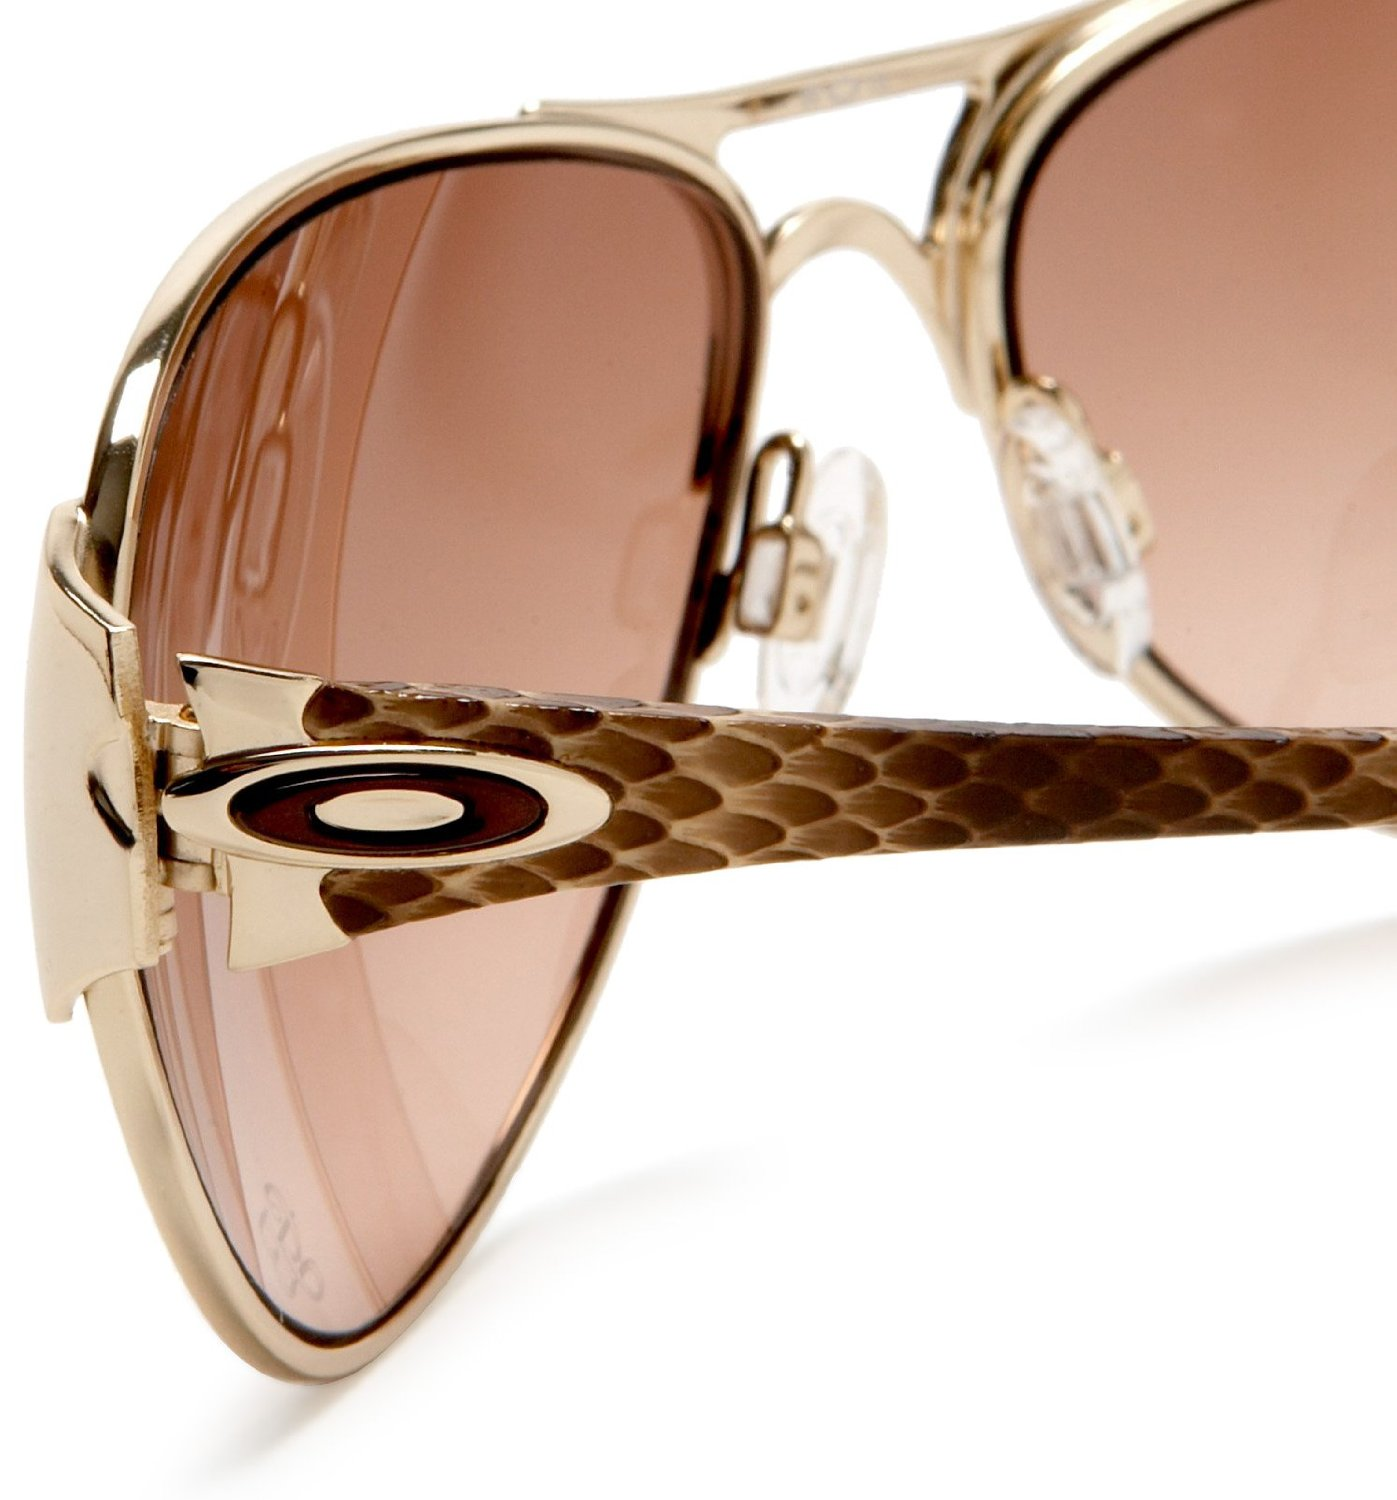 best price on oakley sunglasses xphf  ladies oakley sunglasses e8z9